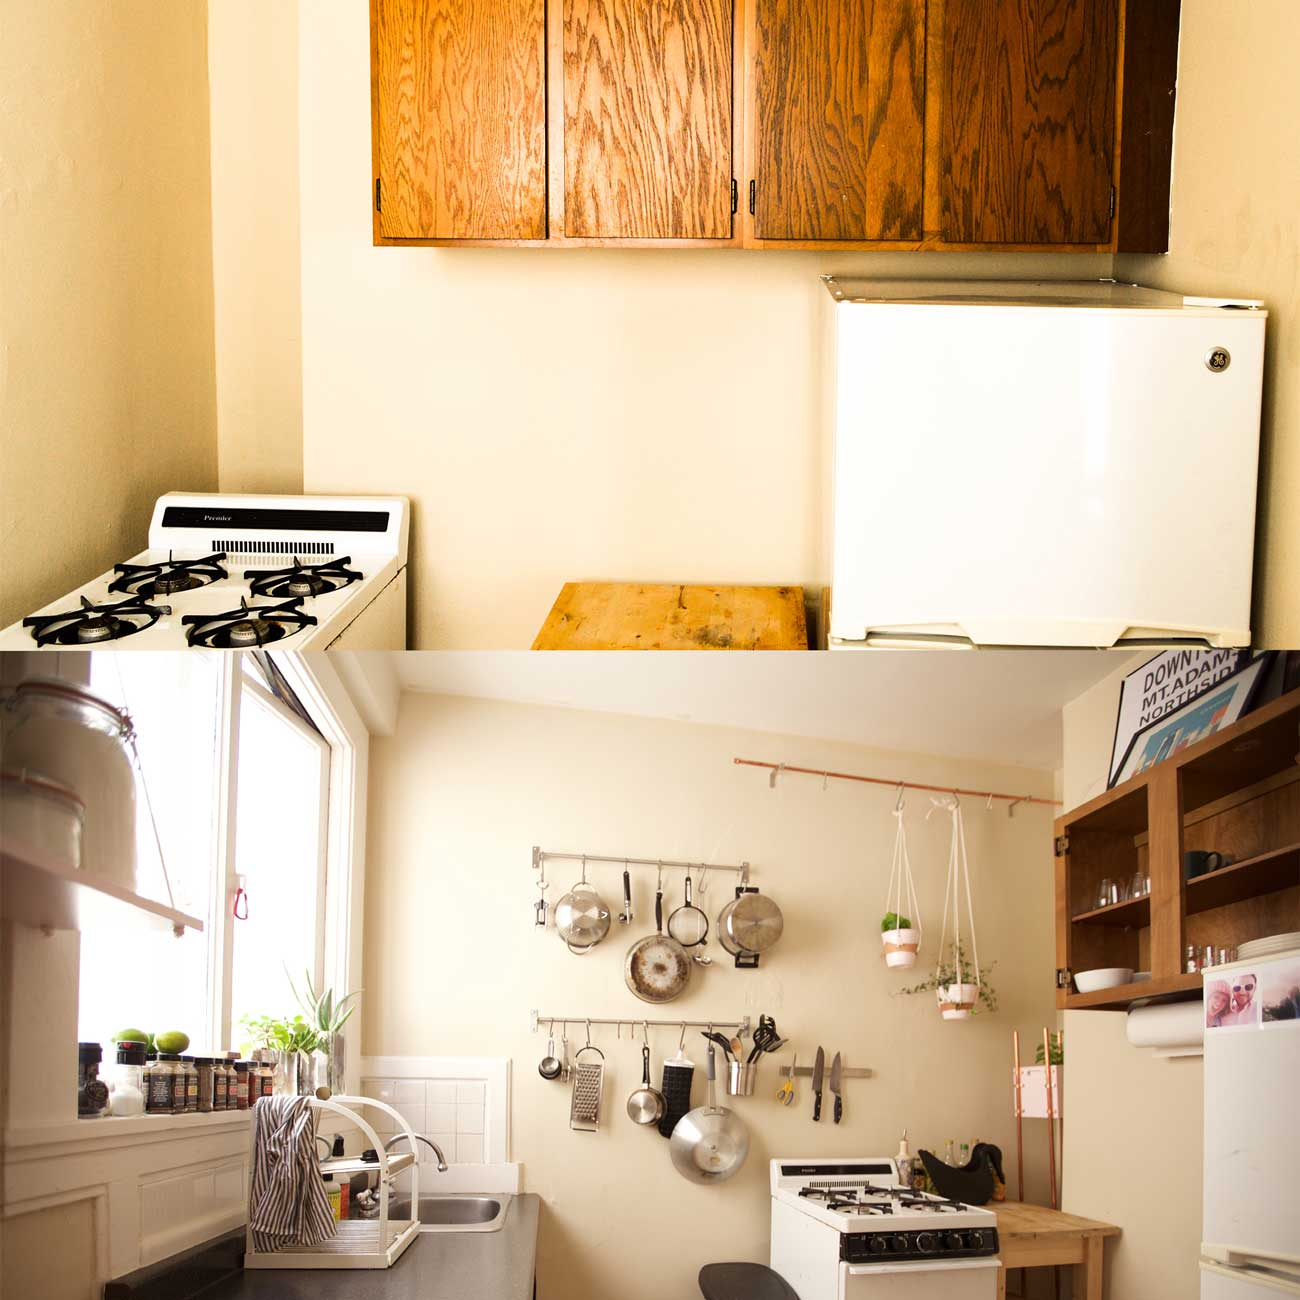 SF STUDIO KITCHEN: BEFORE AND AFTER